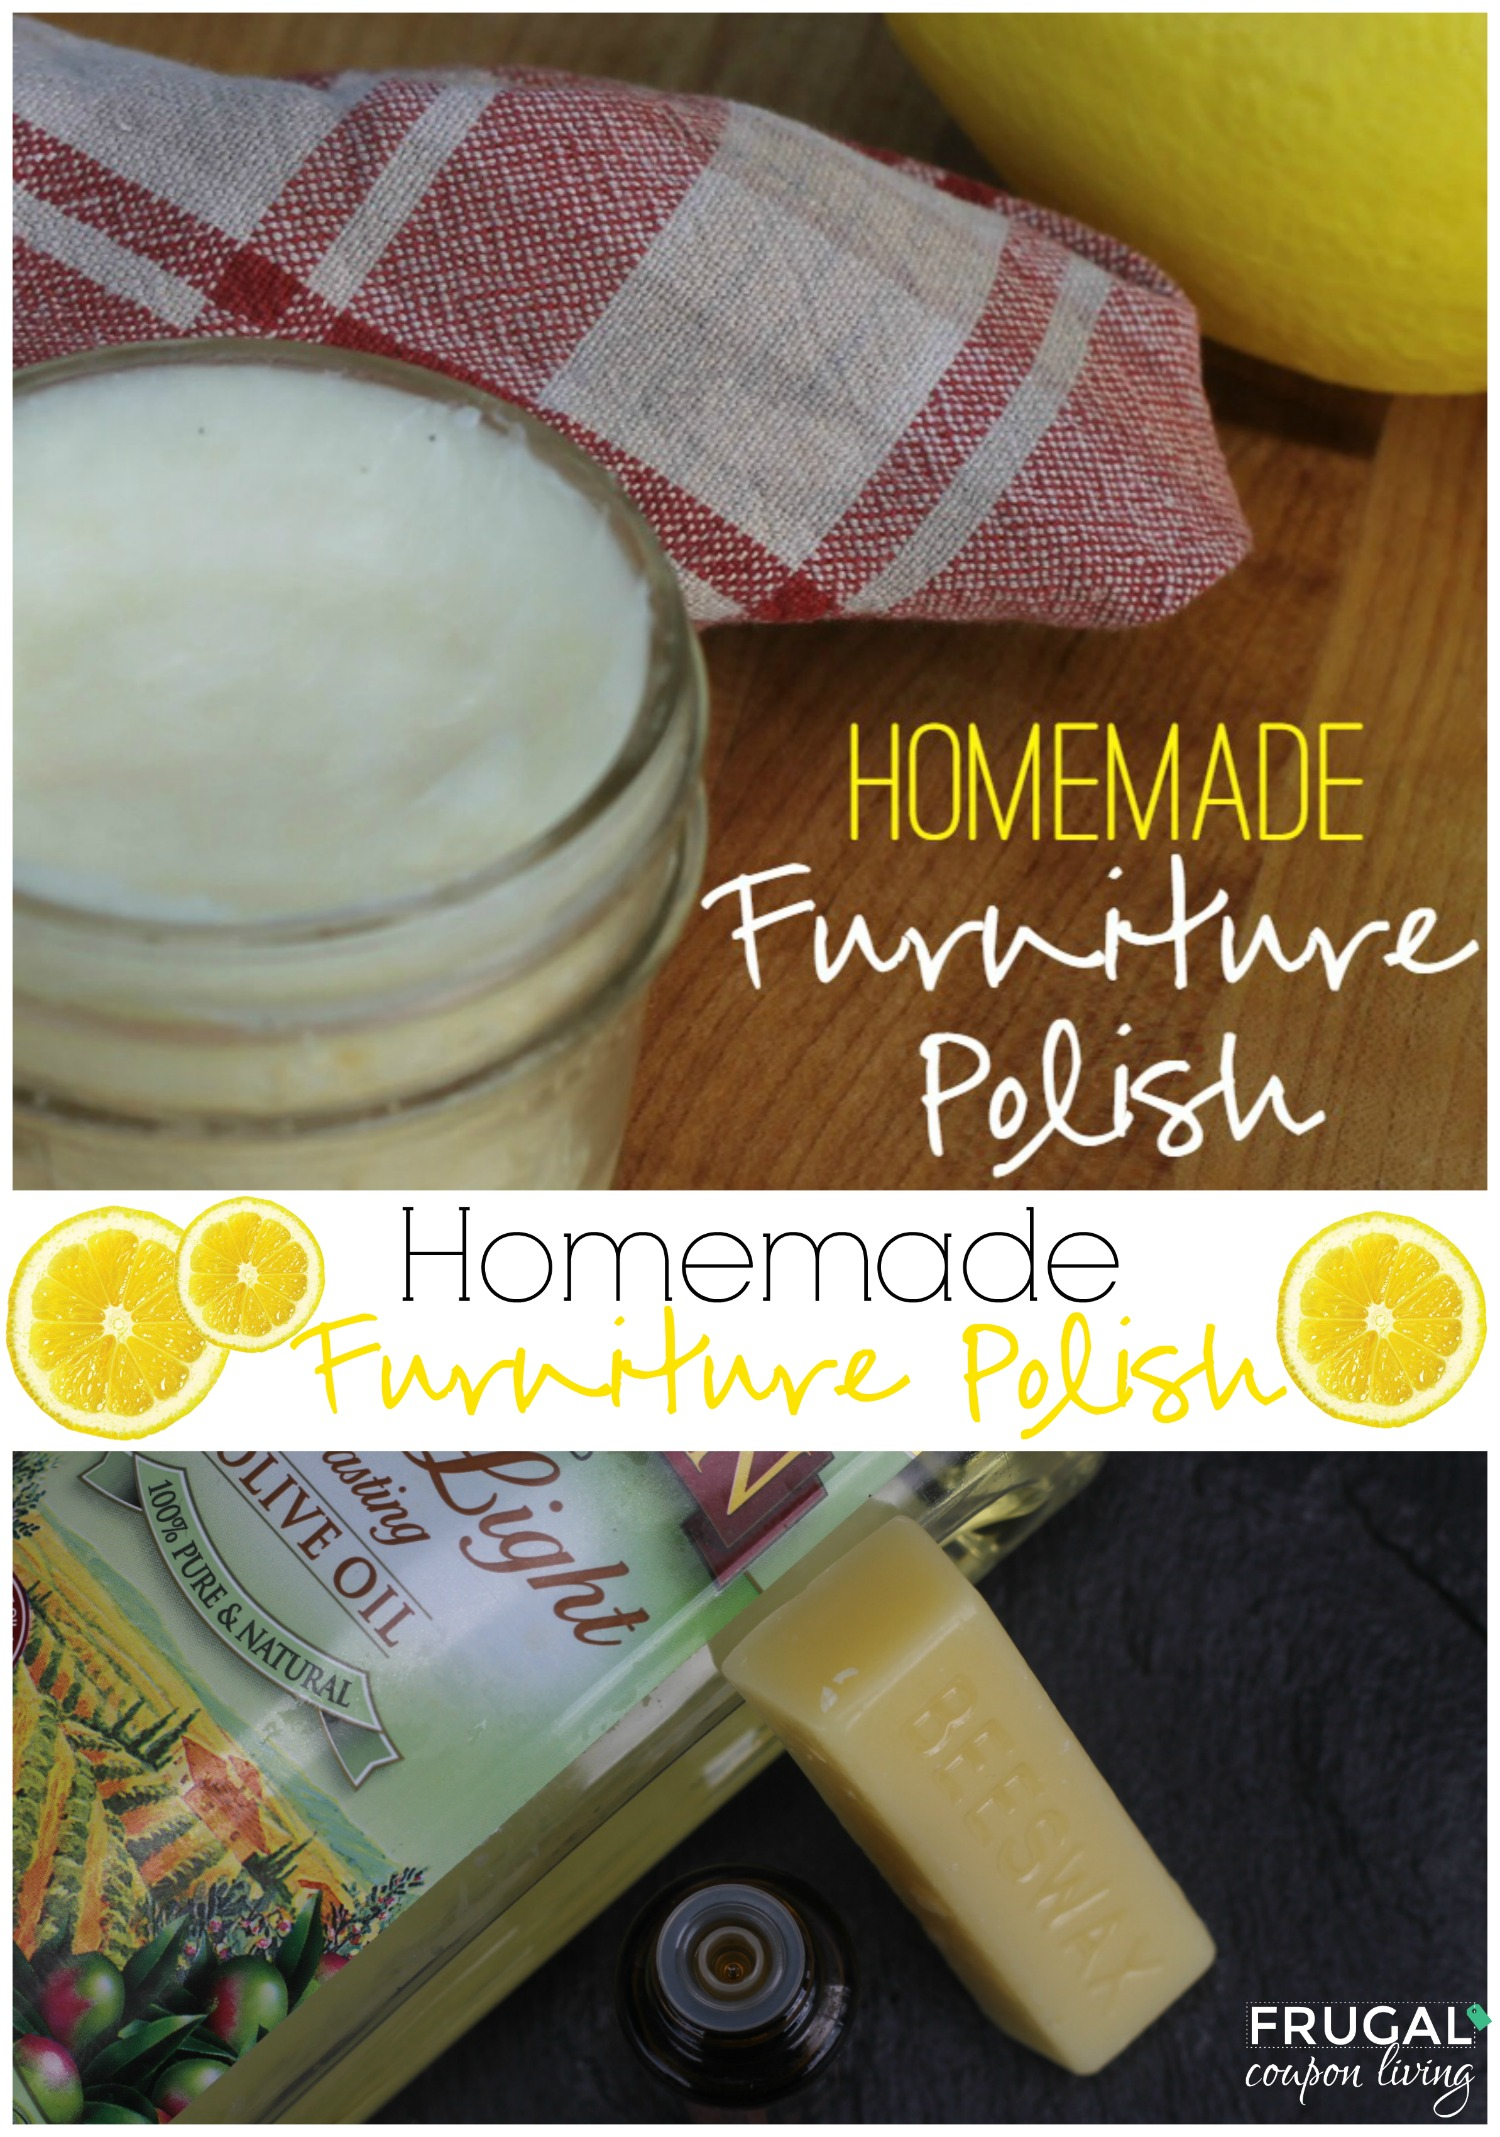 homemade-furniture-polish-Collage-frugal-coupon-living